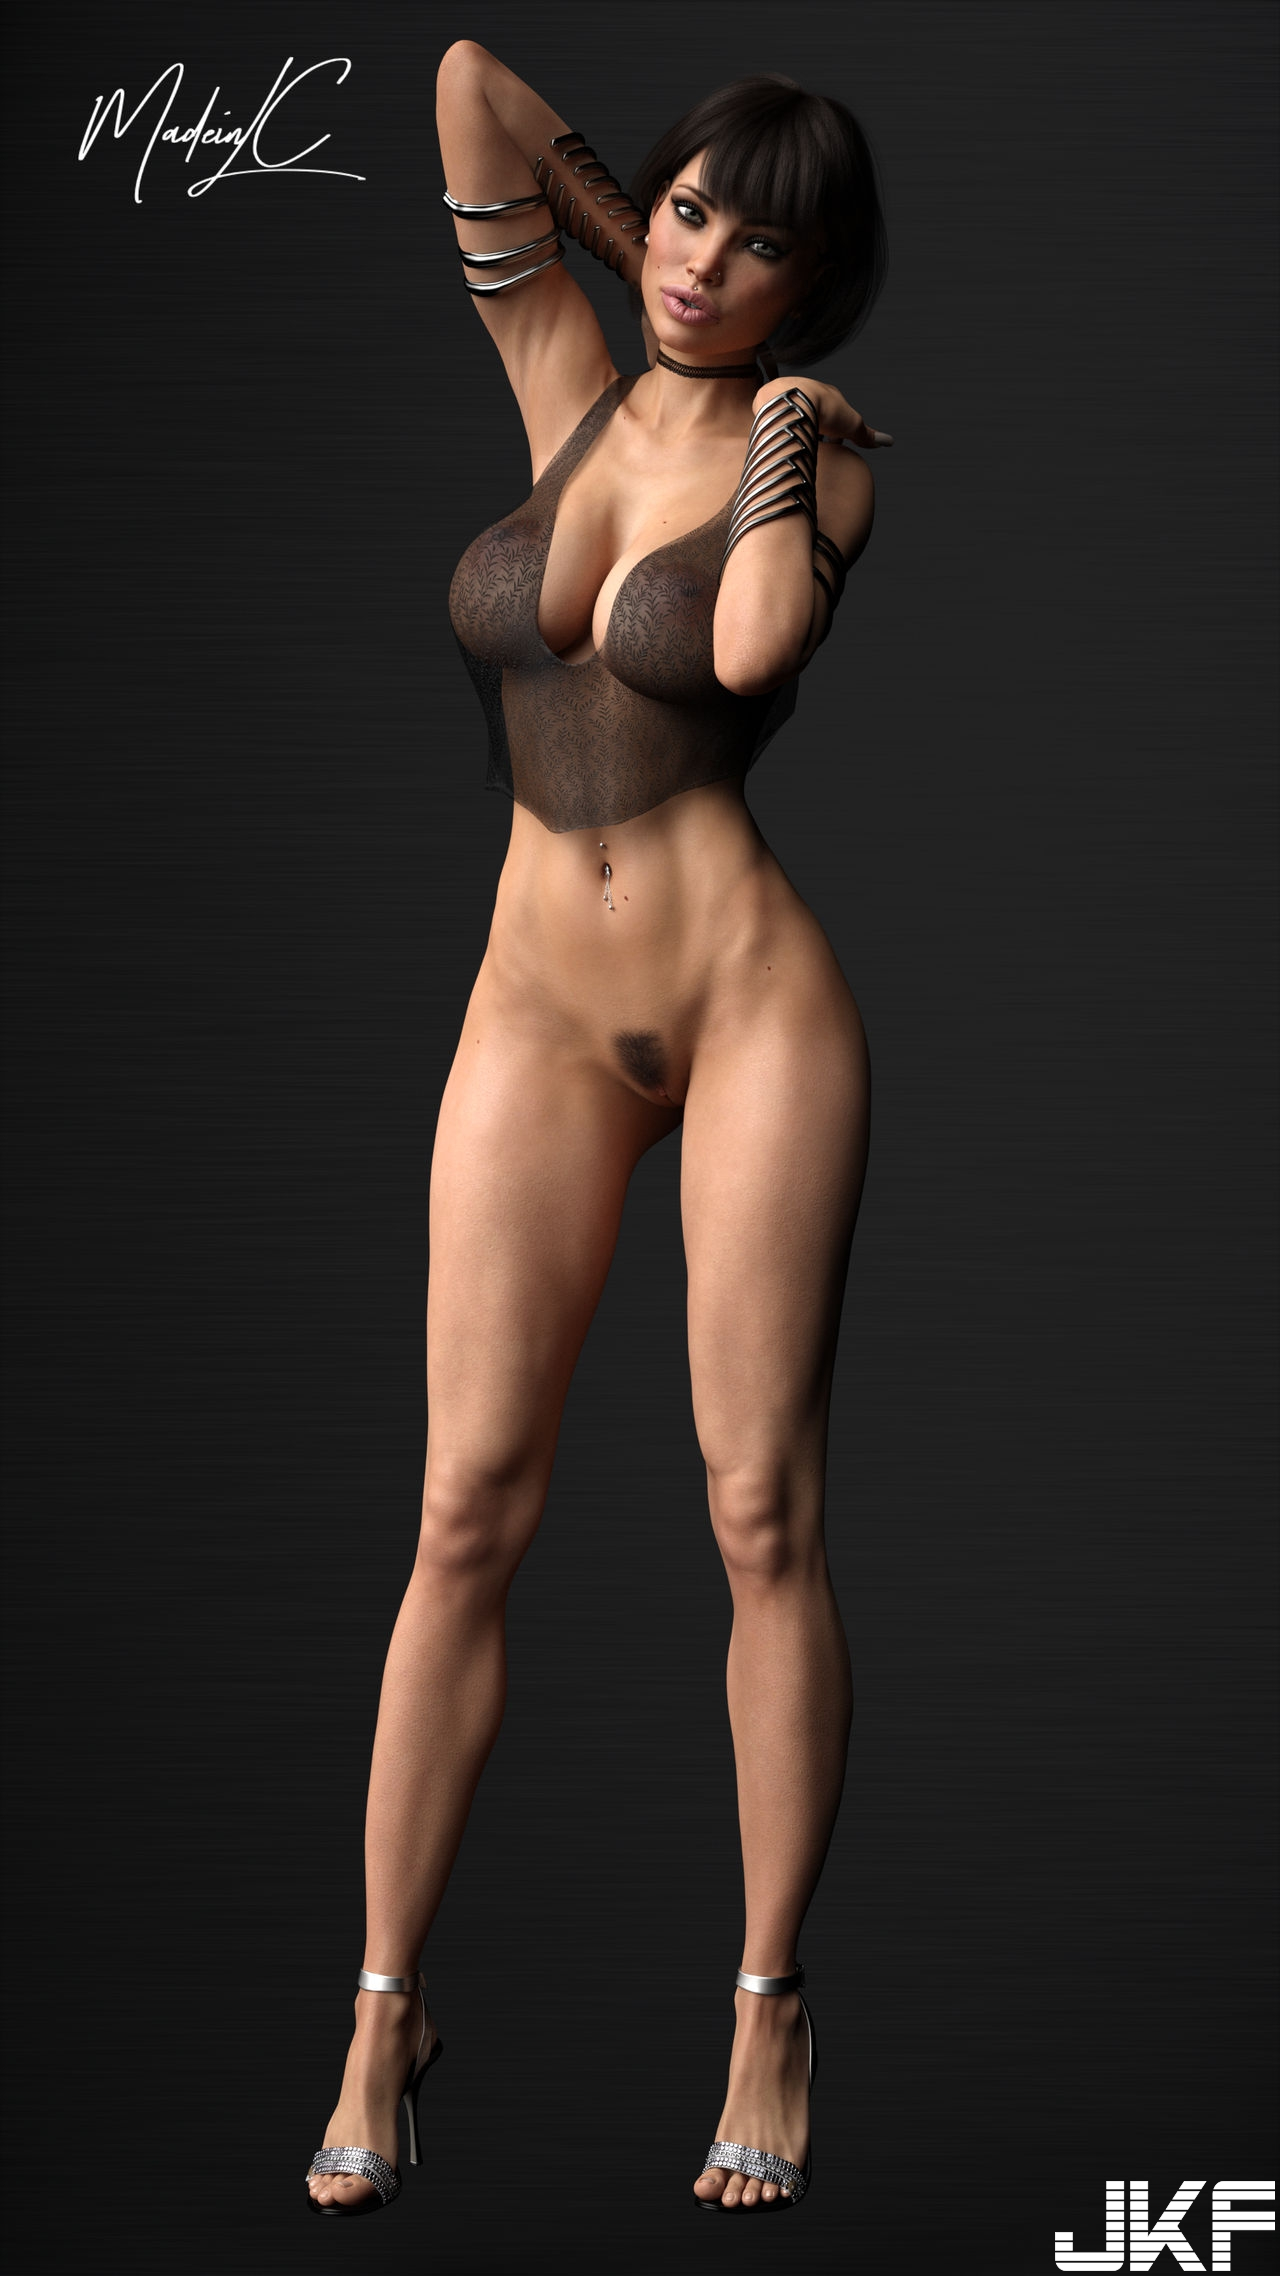 zahia_final_4k___sexy_pose__1_by_madeinlc_dc7comt-fullview.jpg